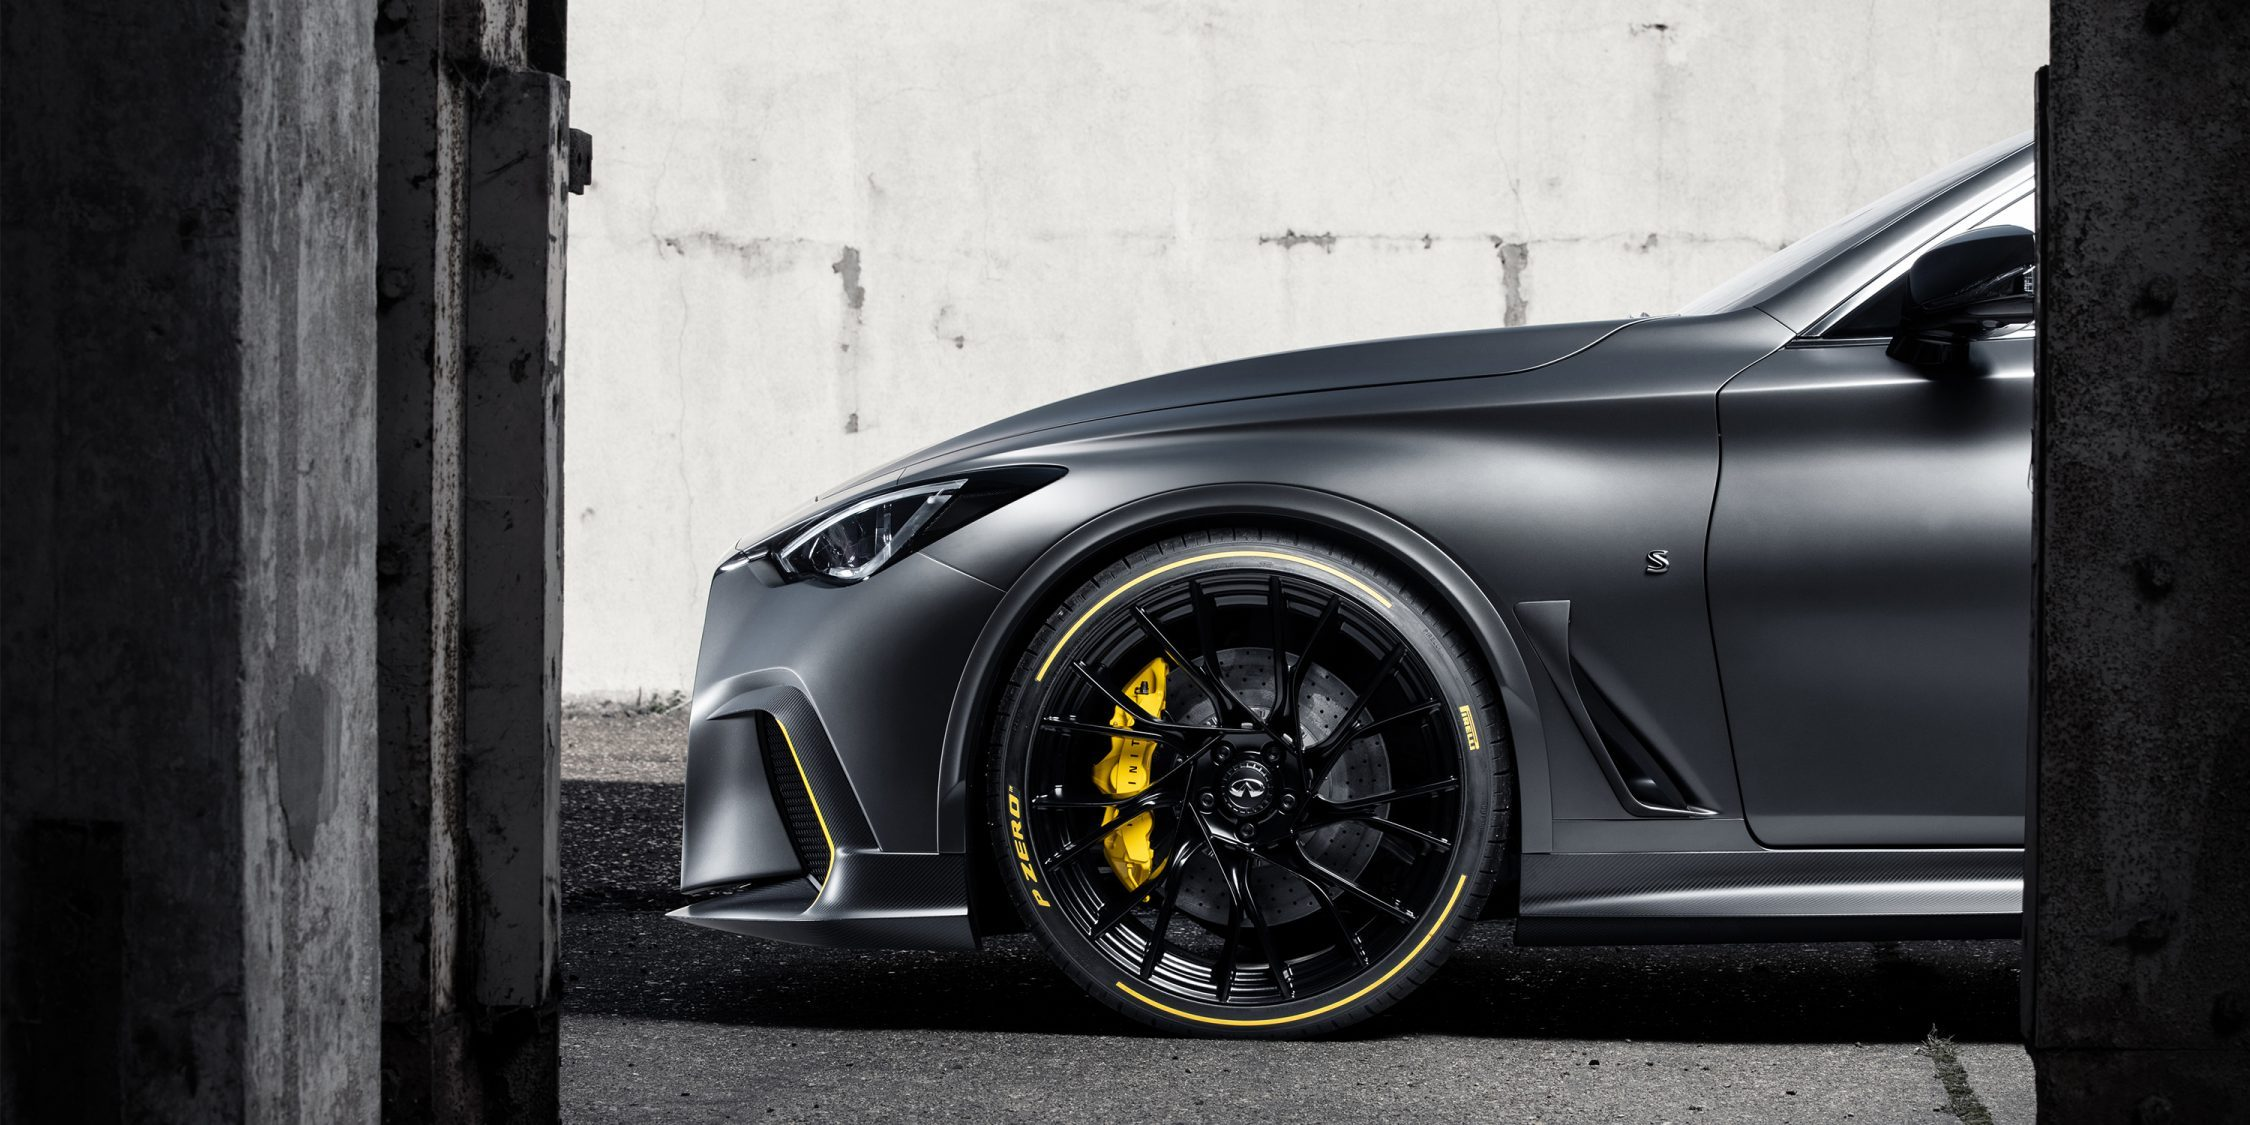 Infiniti Project Black S vehicle features flared wheel arches and enlarged air intakes